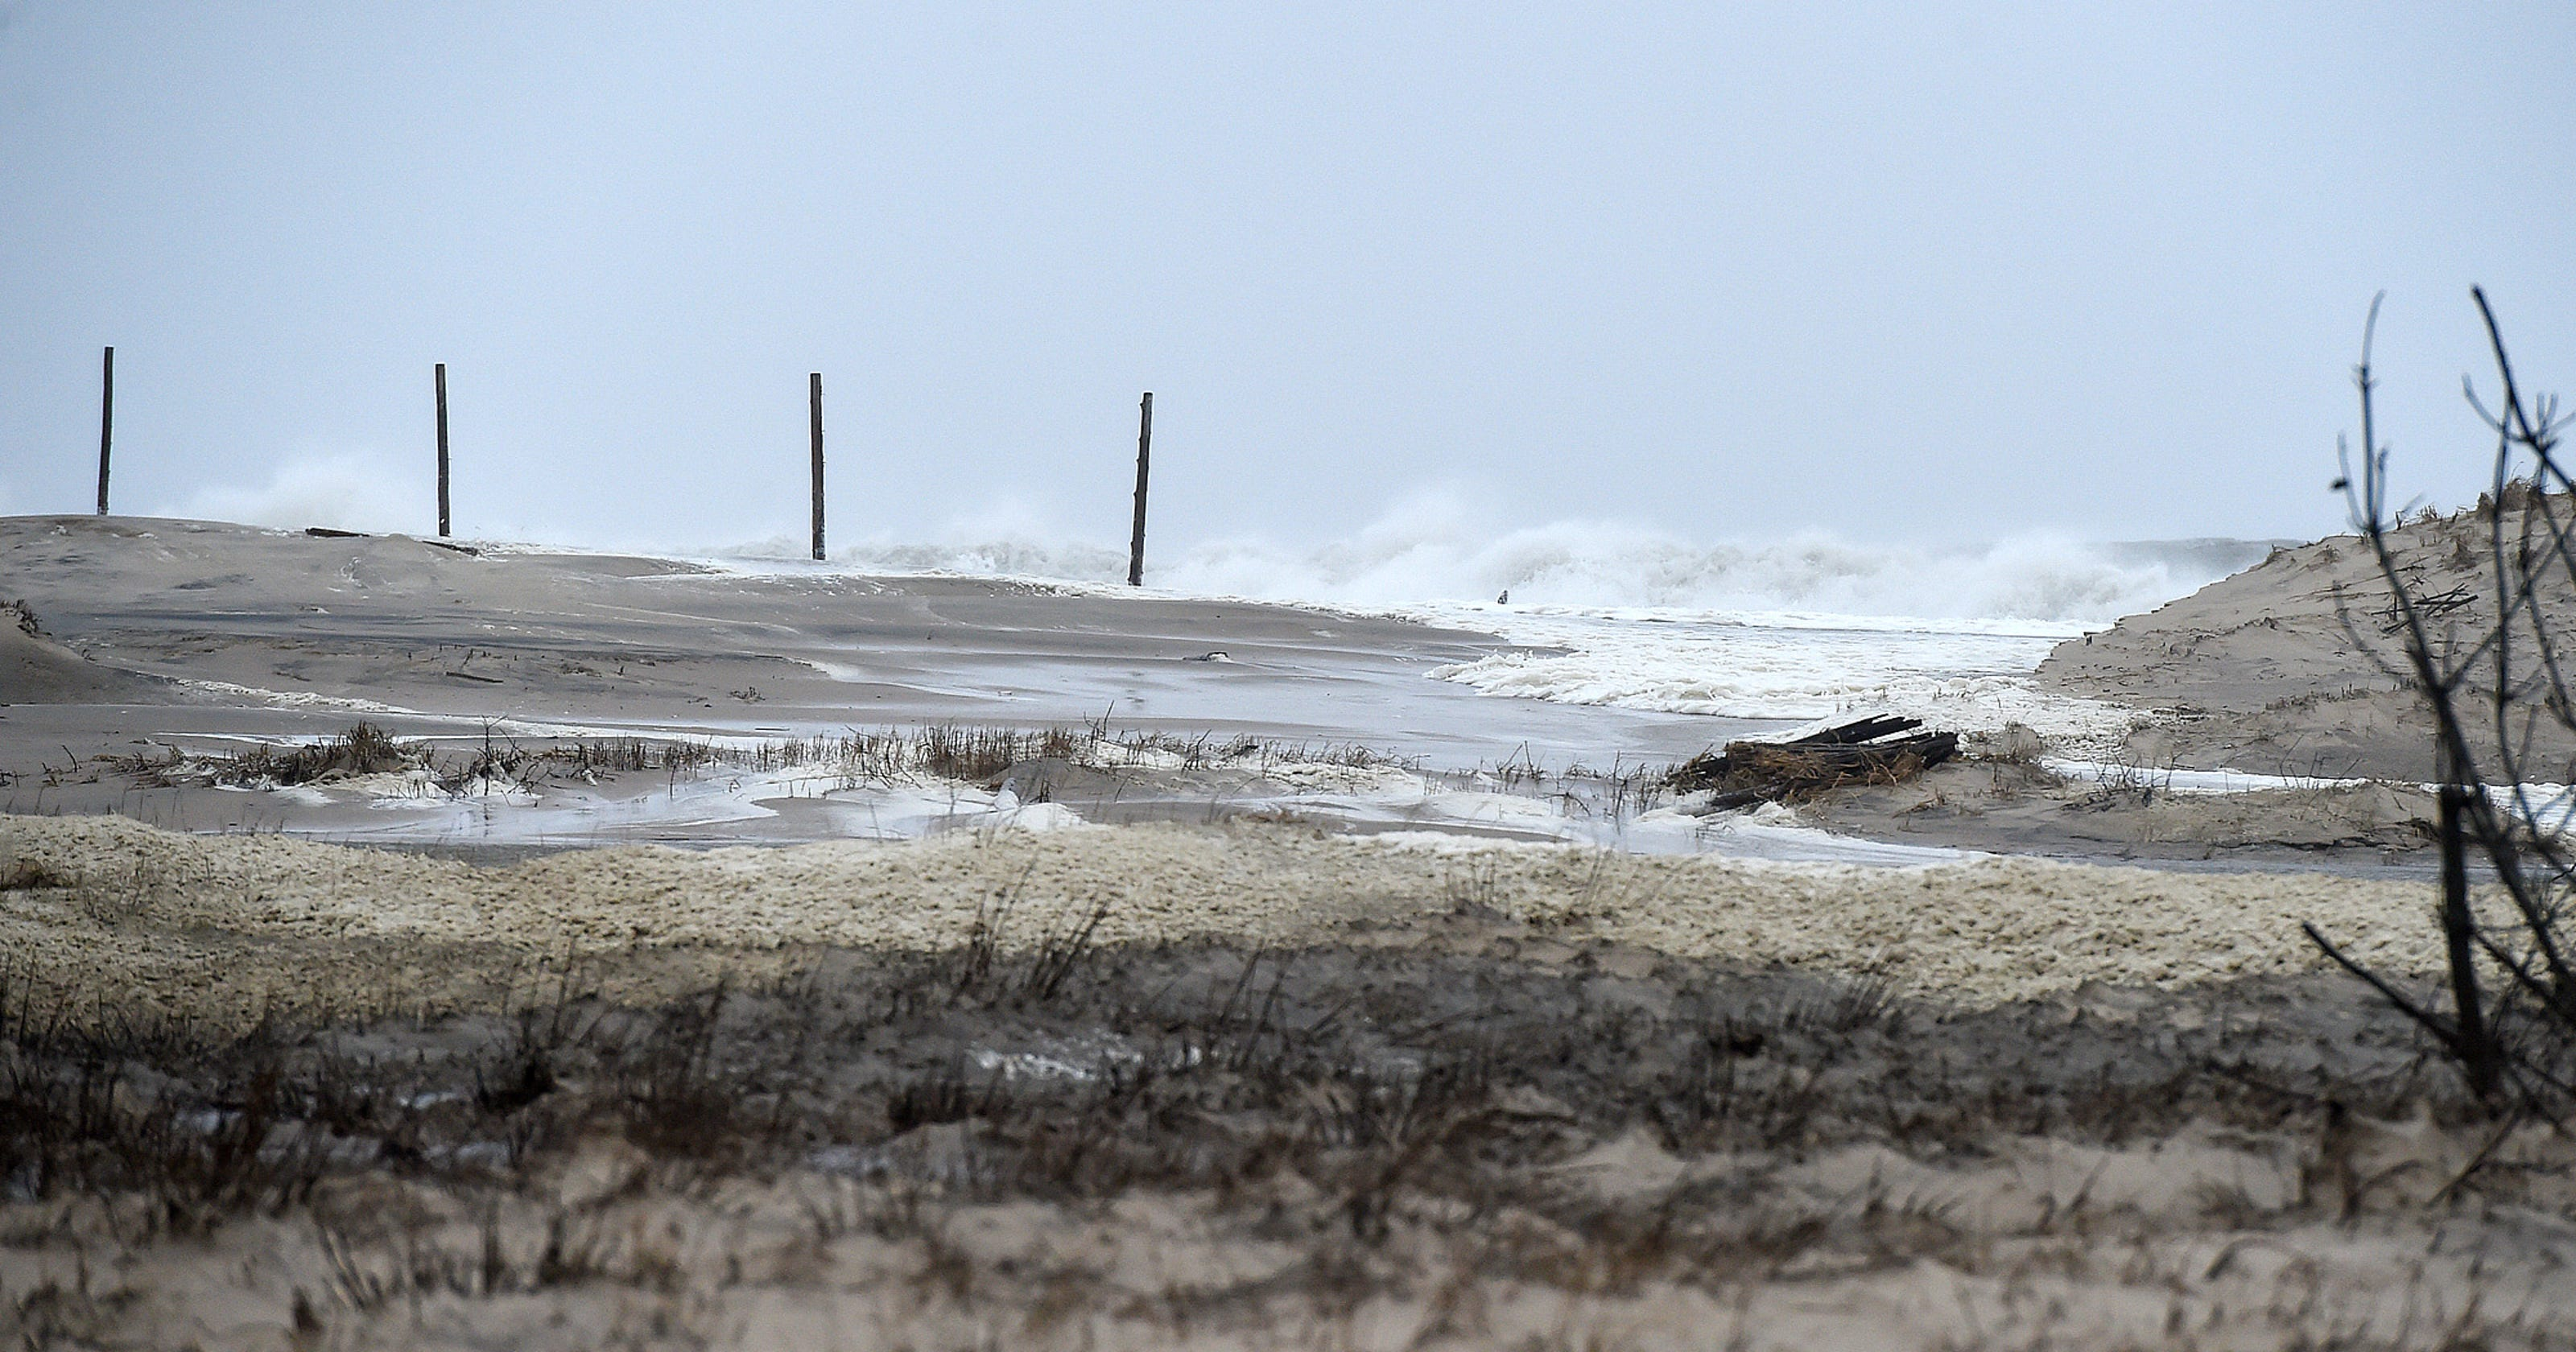 Near Record High Tide Causes Major Delaware Beach Flooding